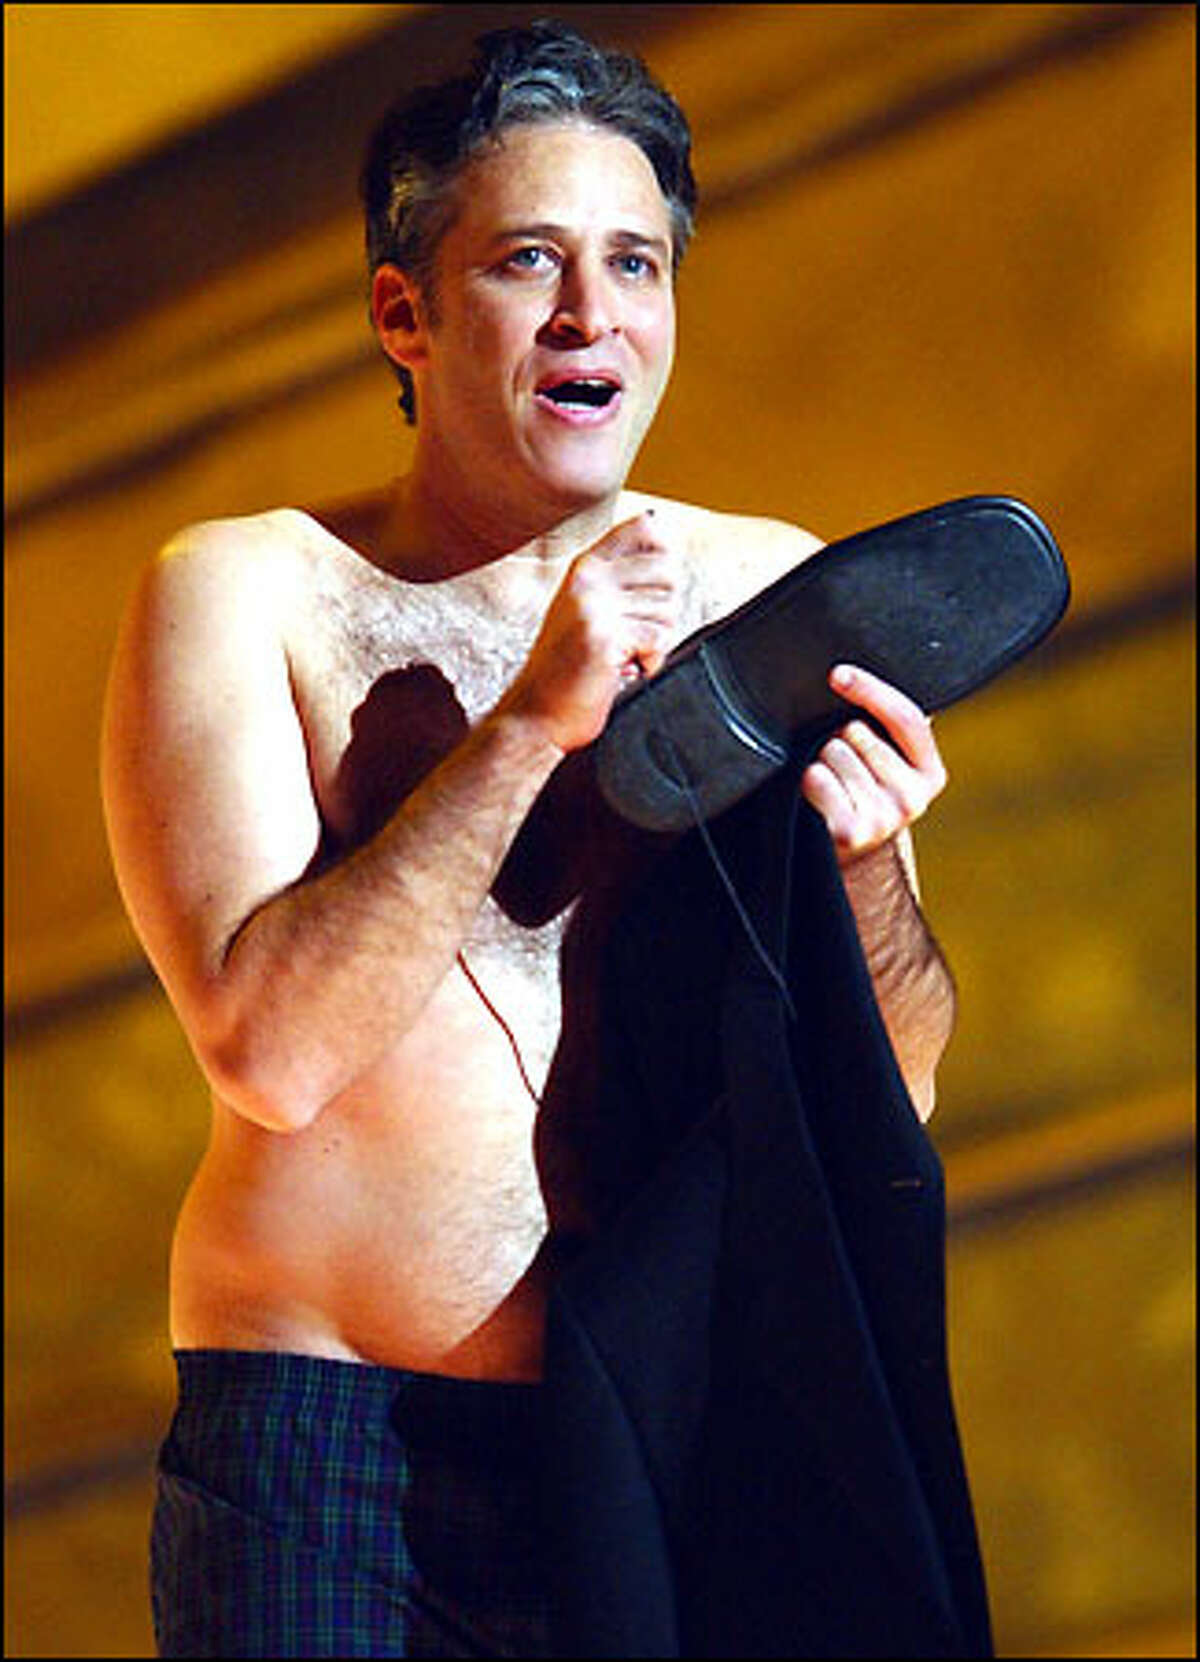 Jon Stewart holds onto his clothes after going through a mock security check as he arrives on stage to host the 44th annual Grammy Awards, Wednesday, Feb. 27, 2002, in Los Angeles.